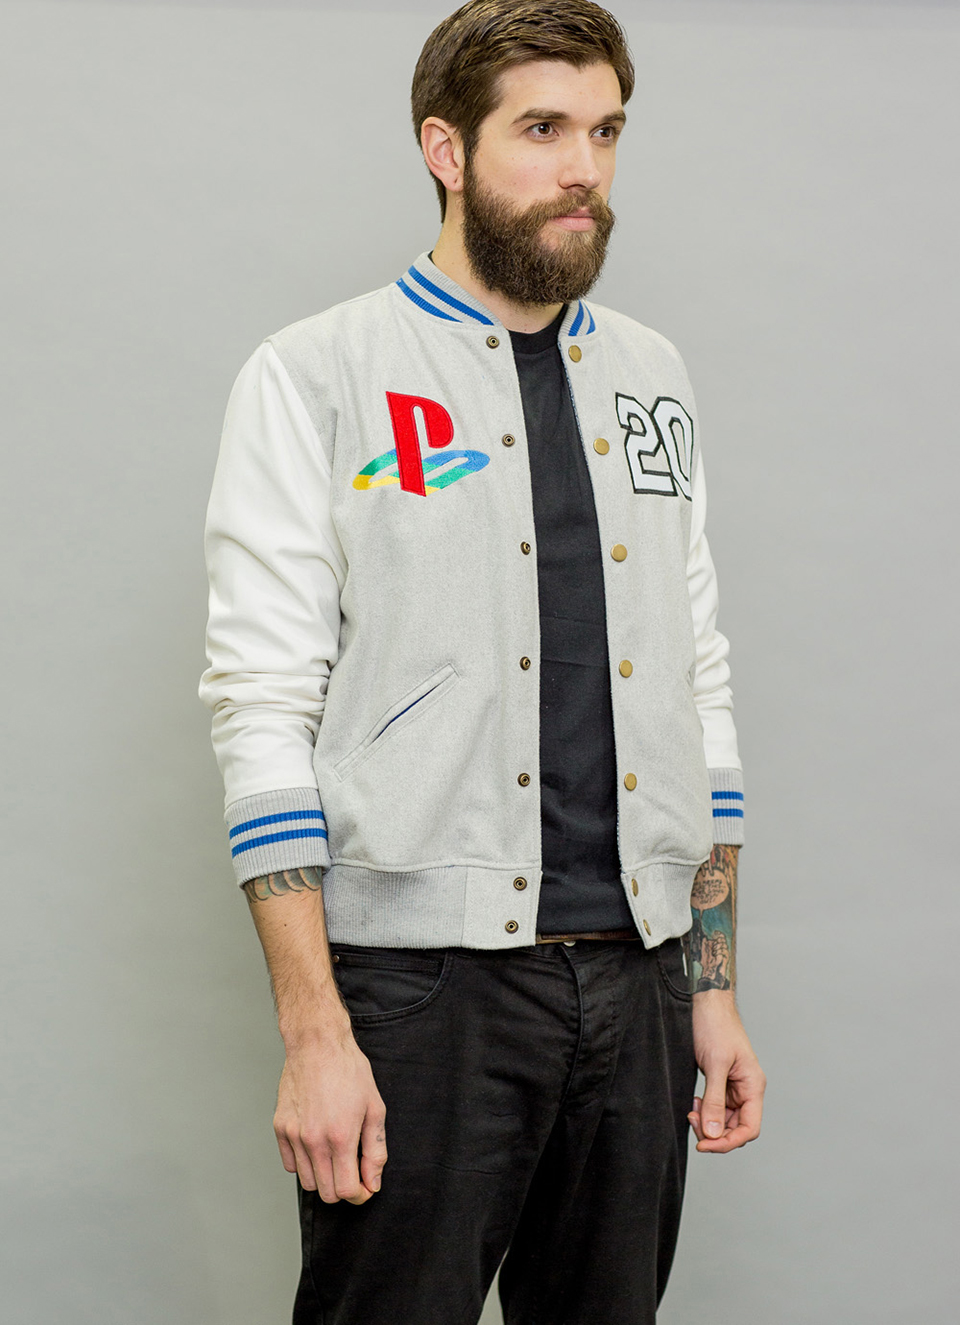 PlayStation 20th Anniversary Clothing